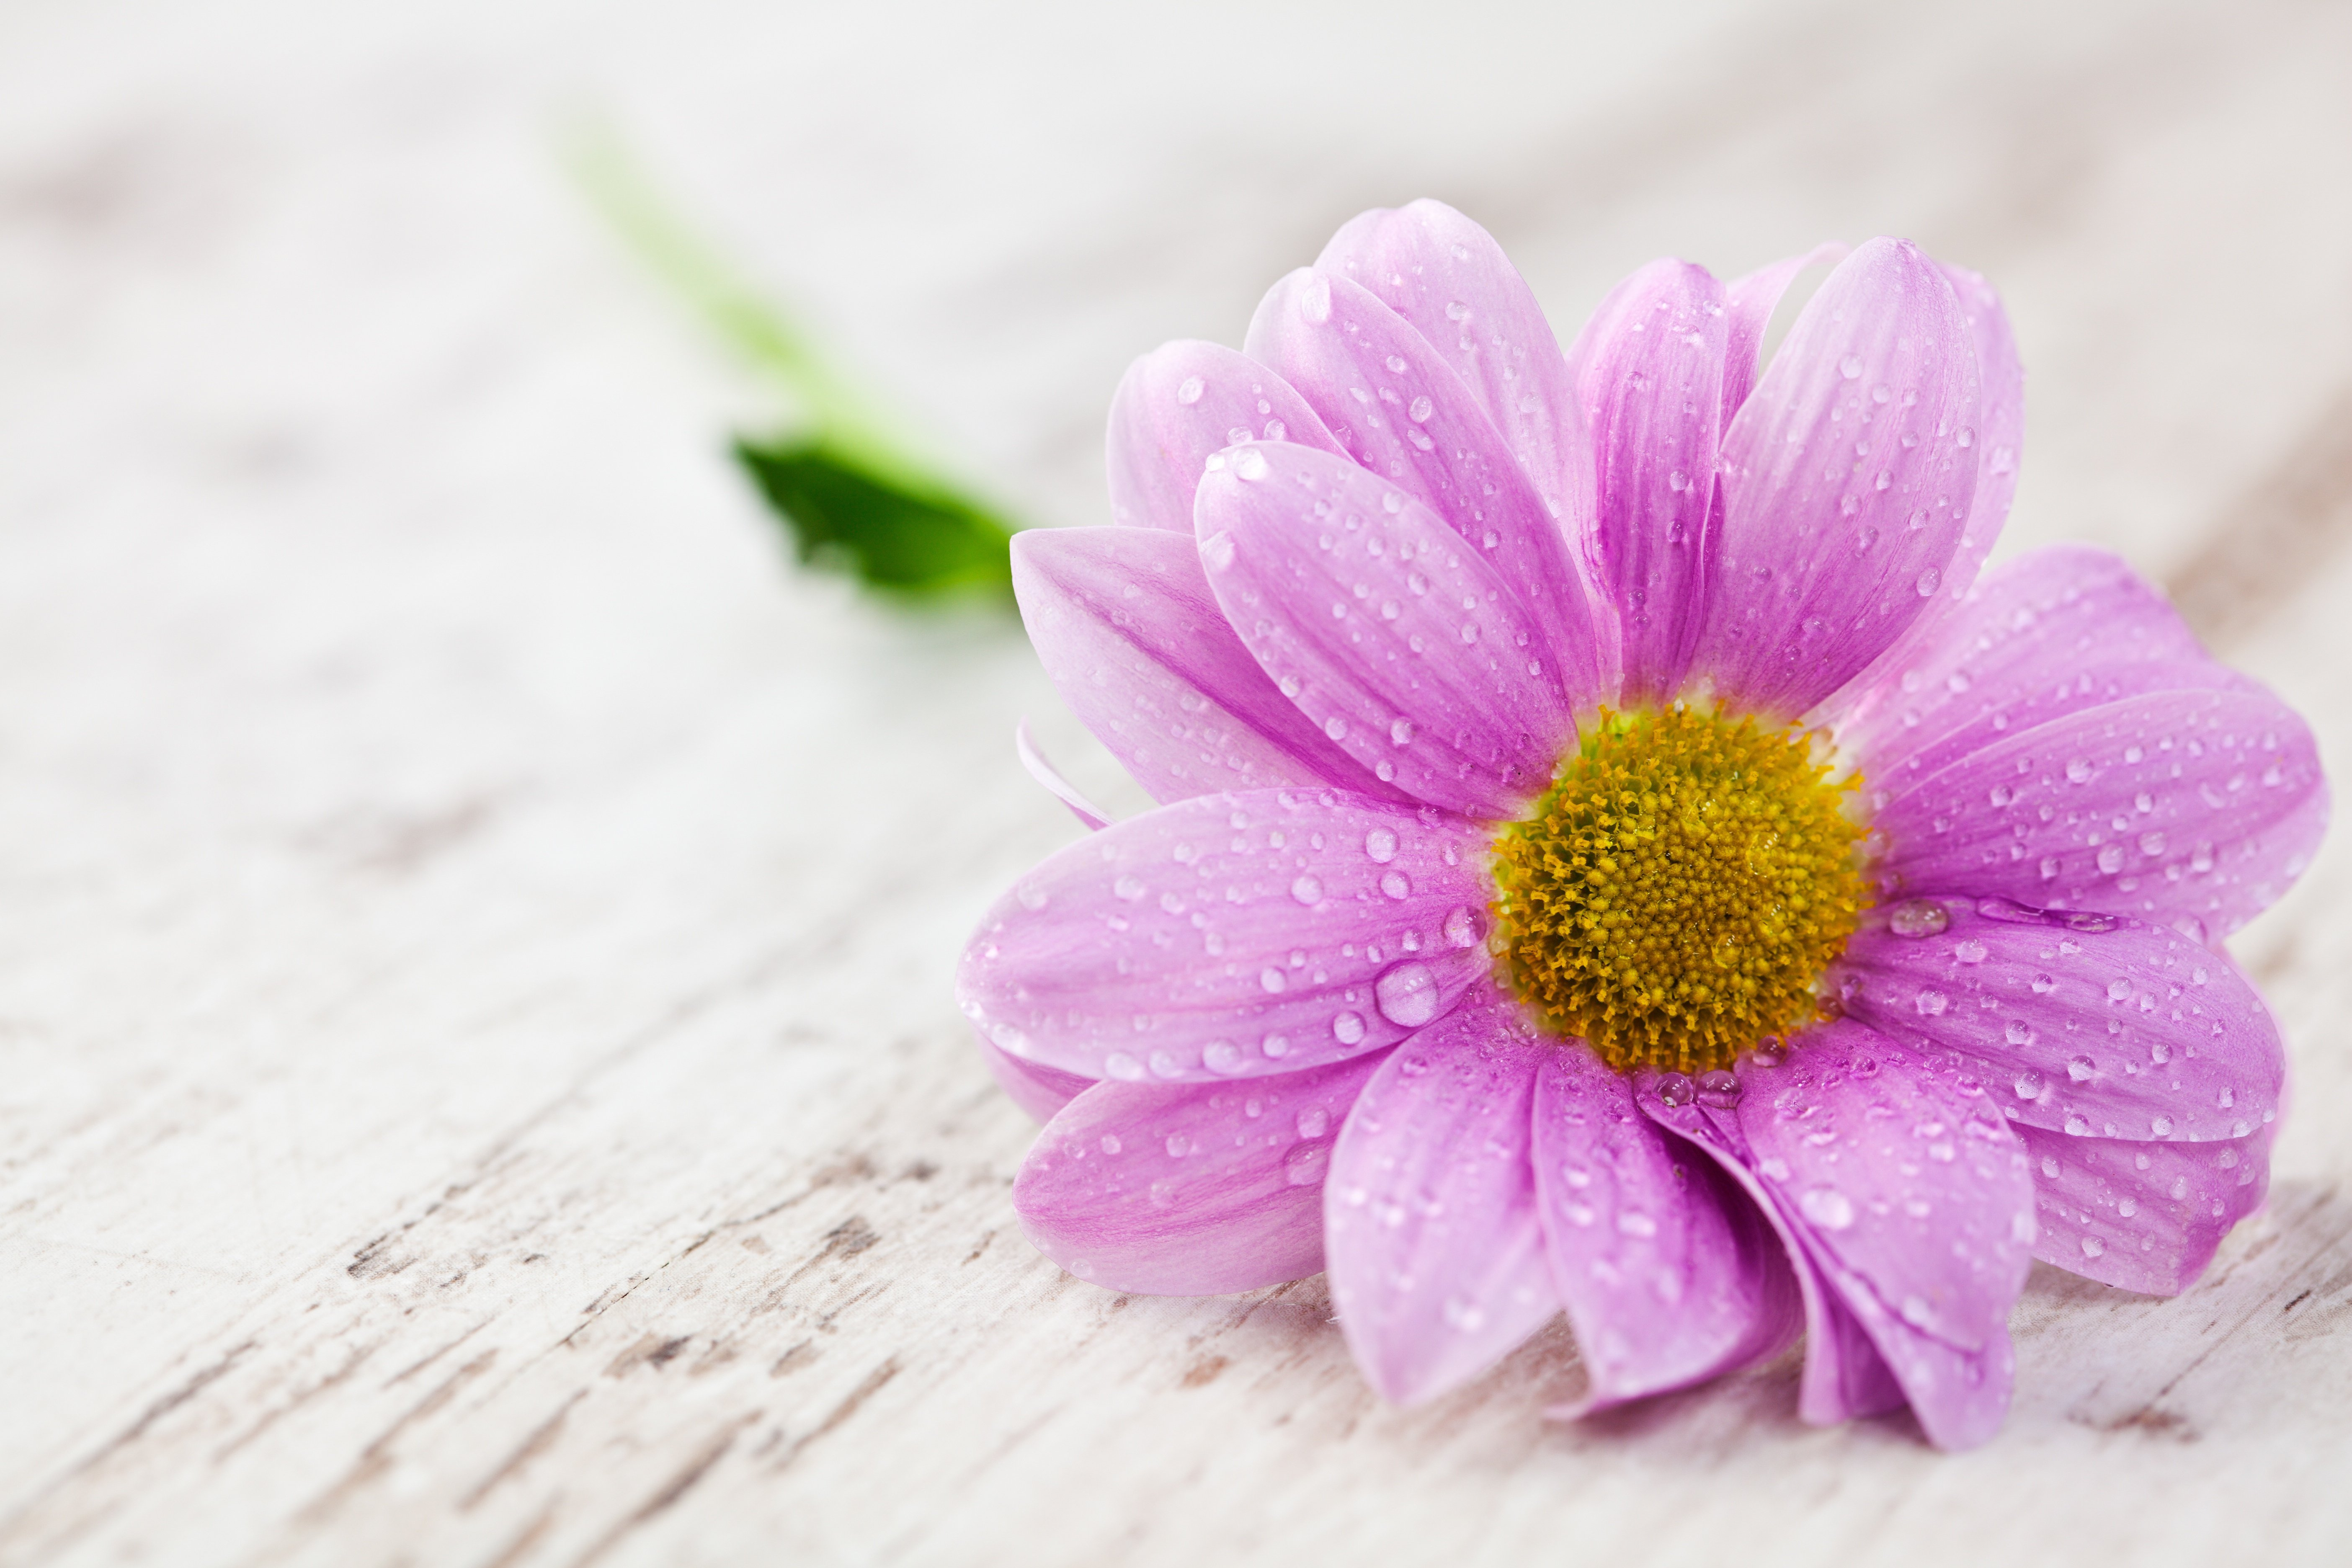 Flowers droplets wallpapers